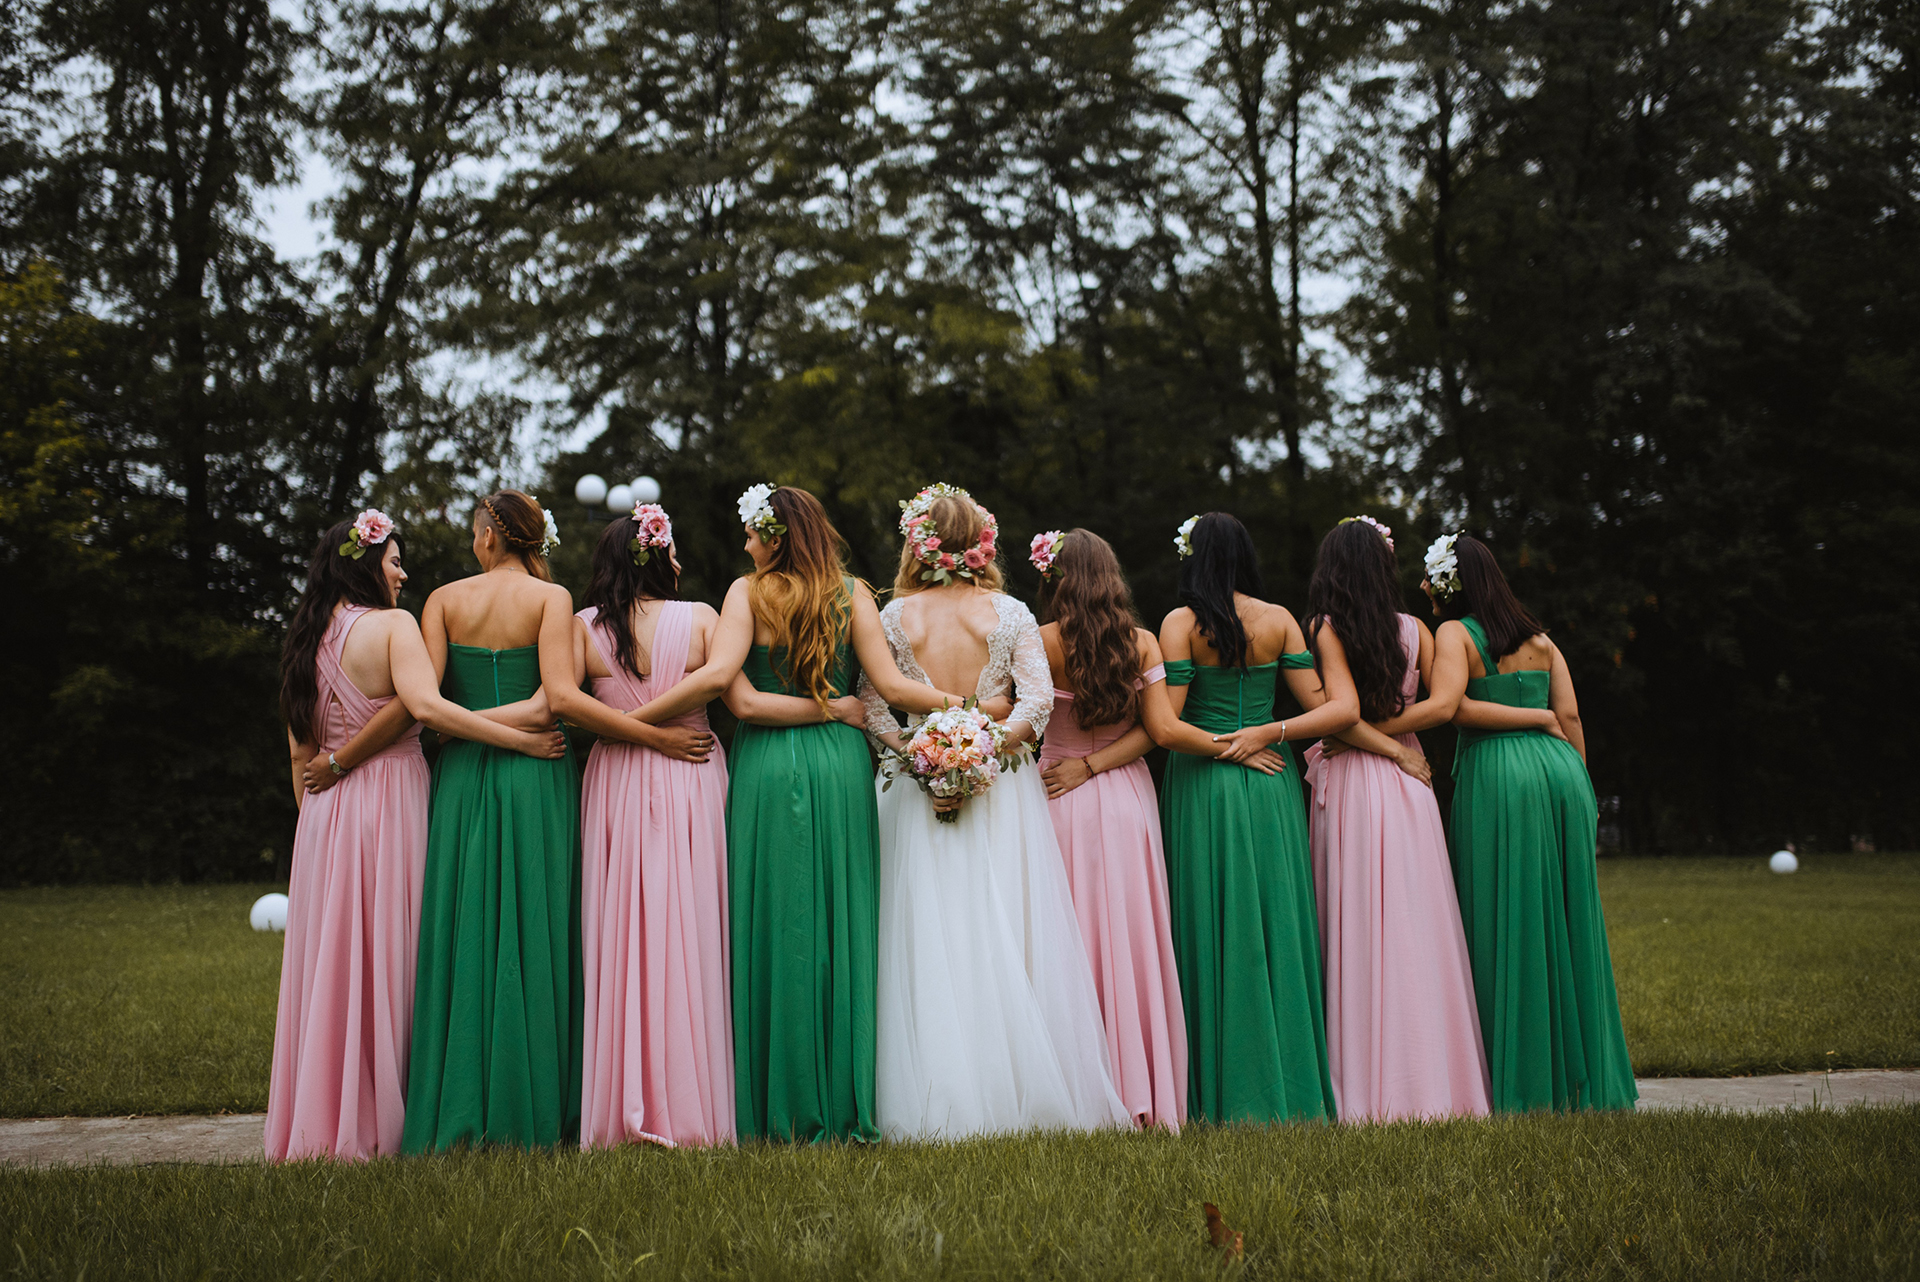 wedding-pink-and-green-bridesmaids-dresses-tulle-and-lace-wedding-dress (9)